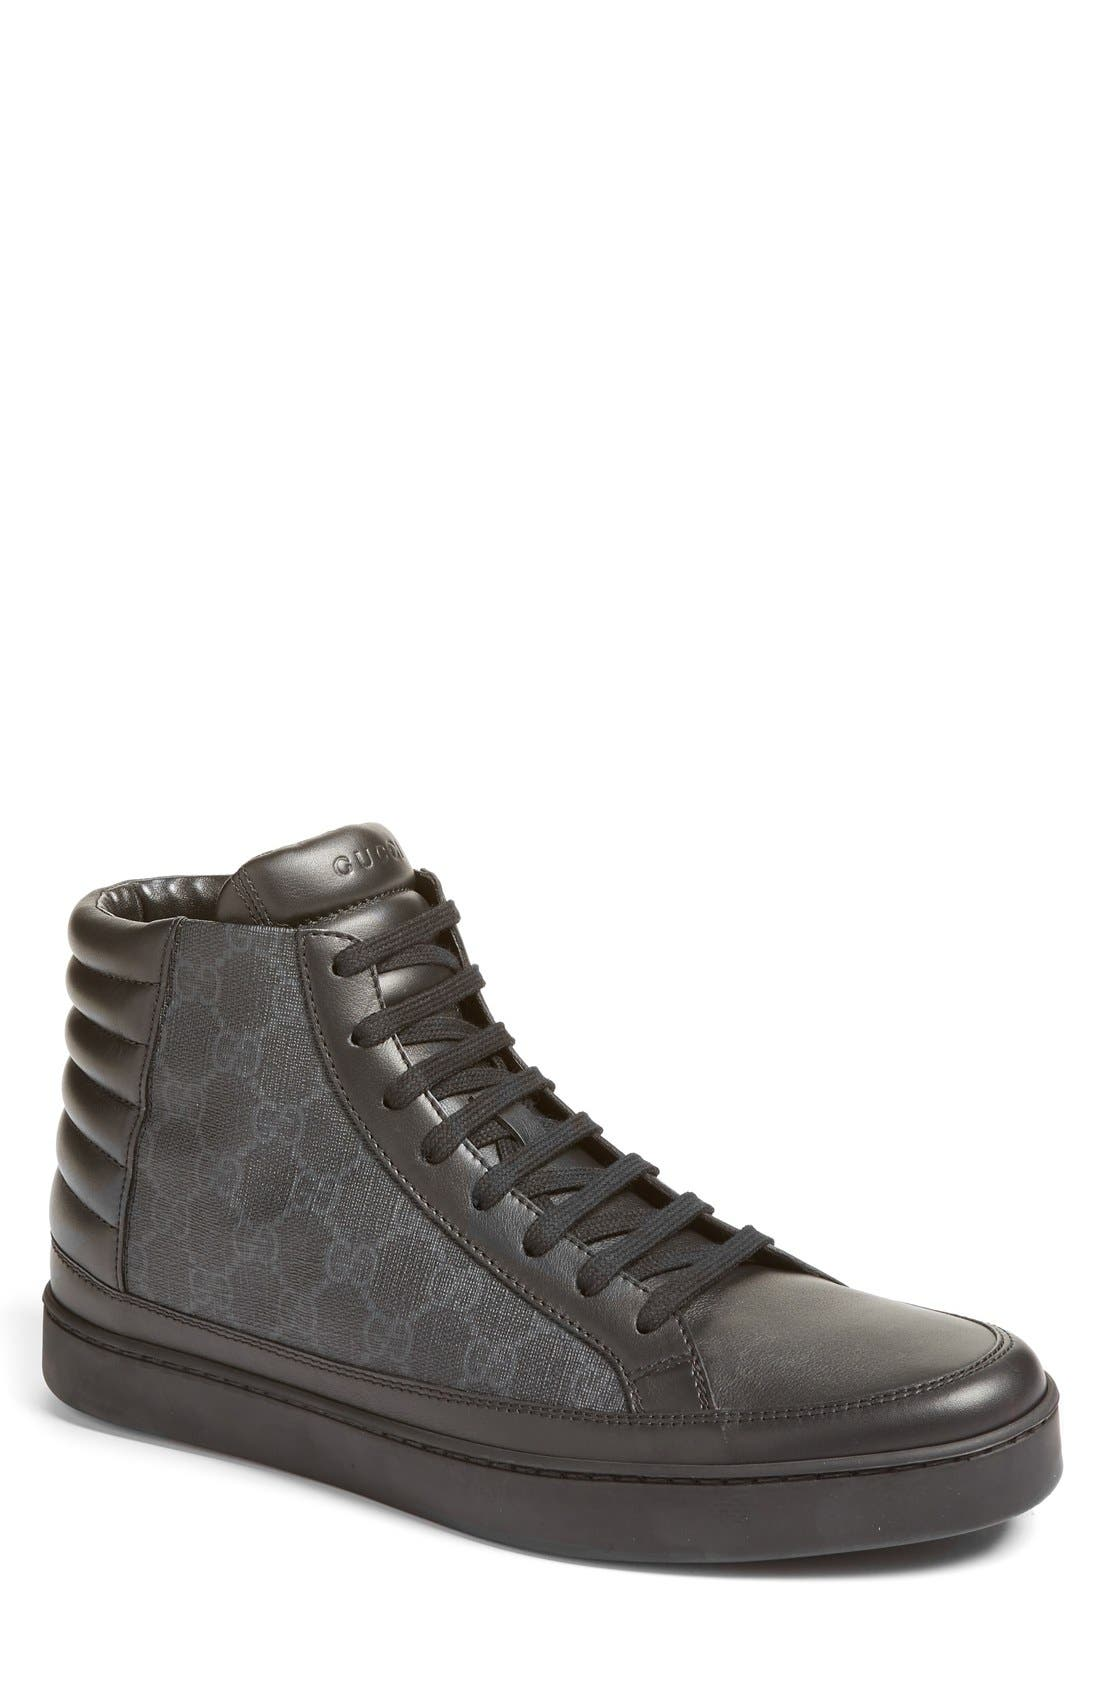 black gucci shoes for men high tops. main image - gucci \u0027common\u0027 high top sneaker (men) black shoes for men tops l